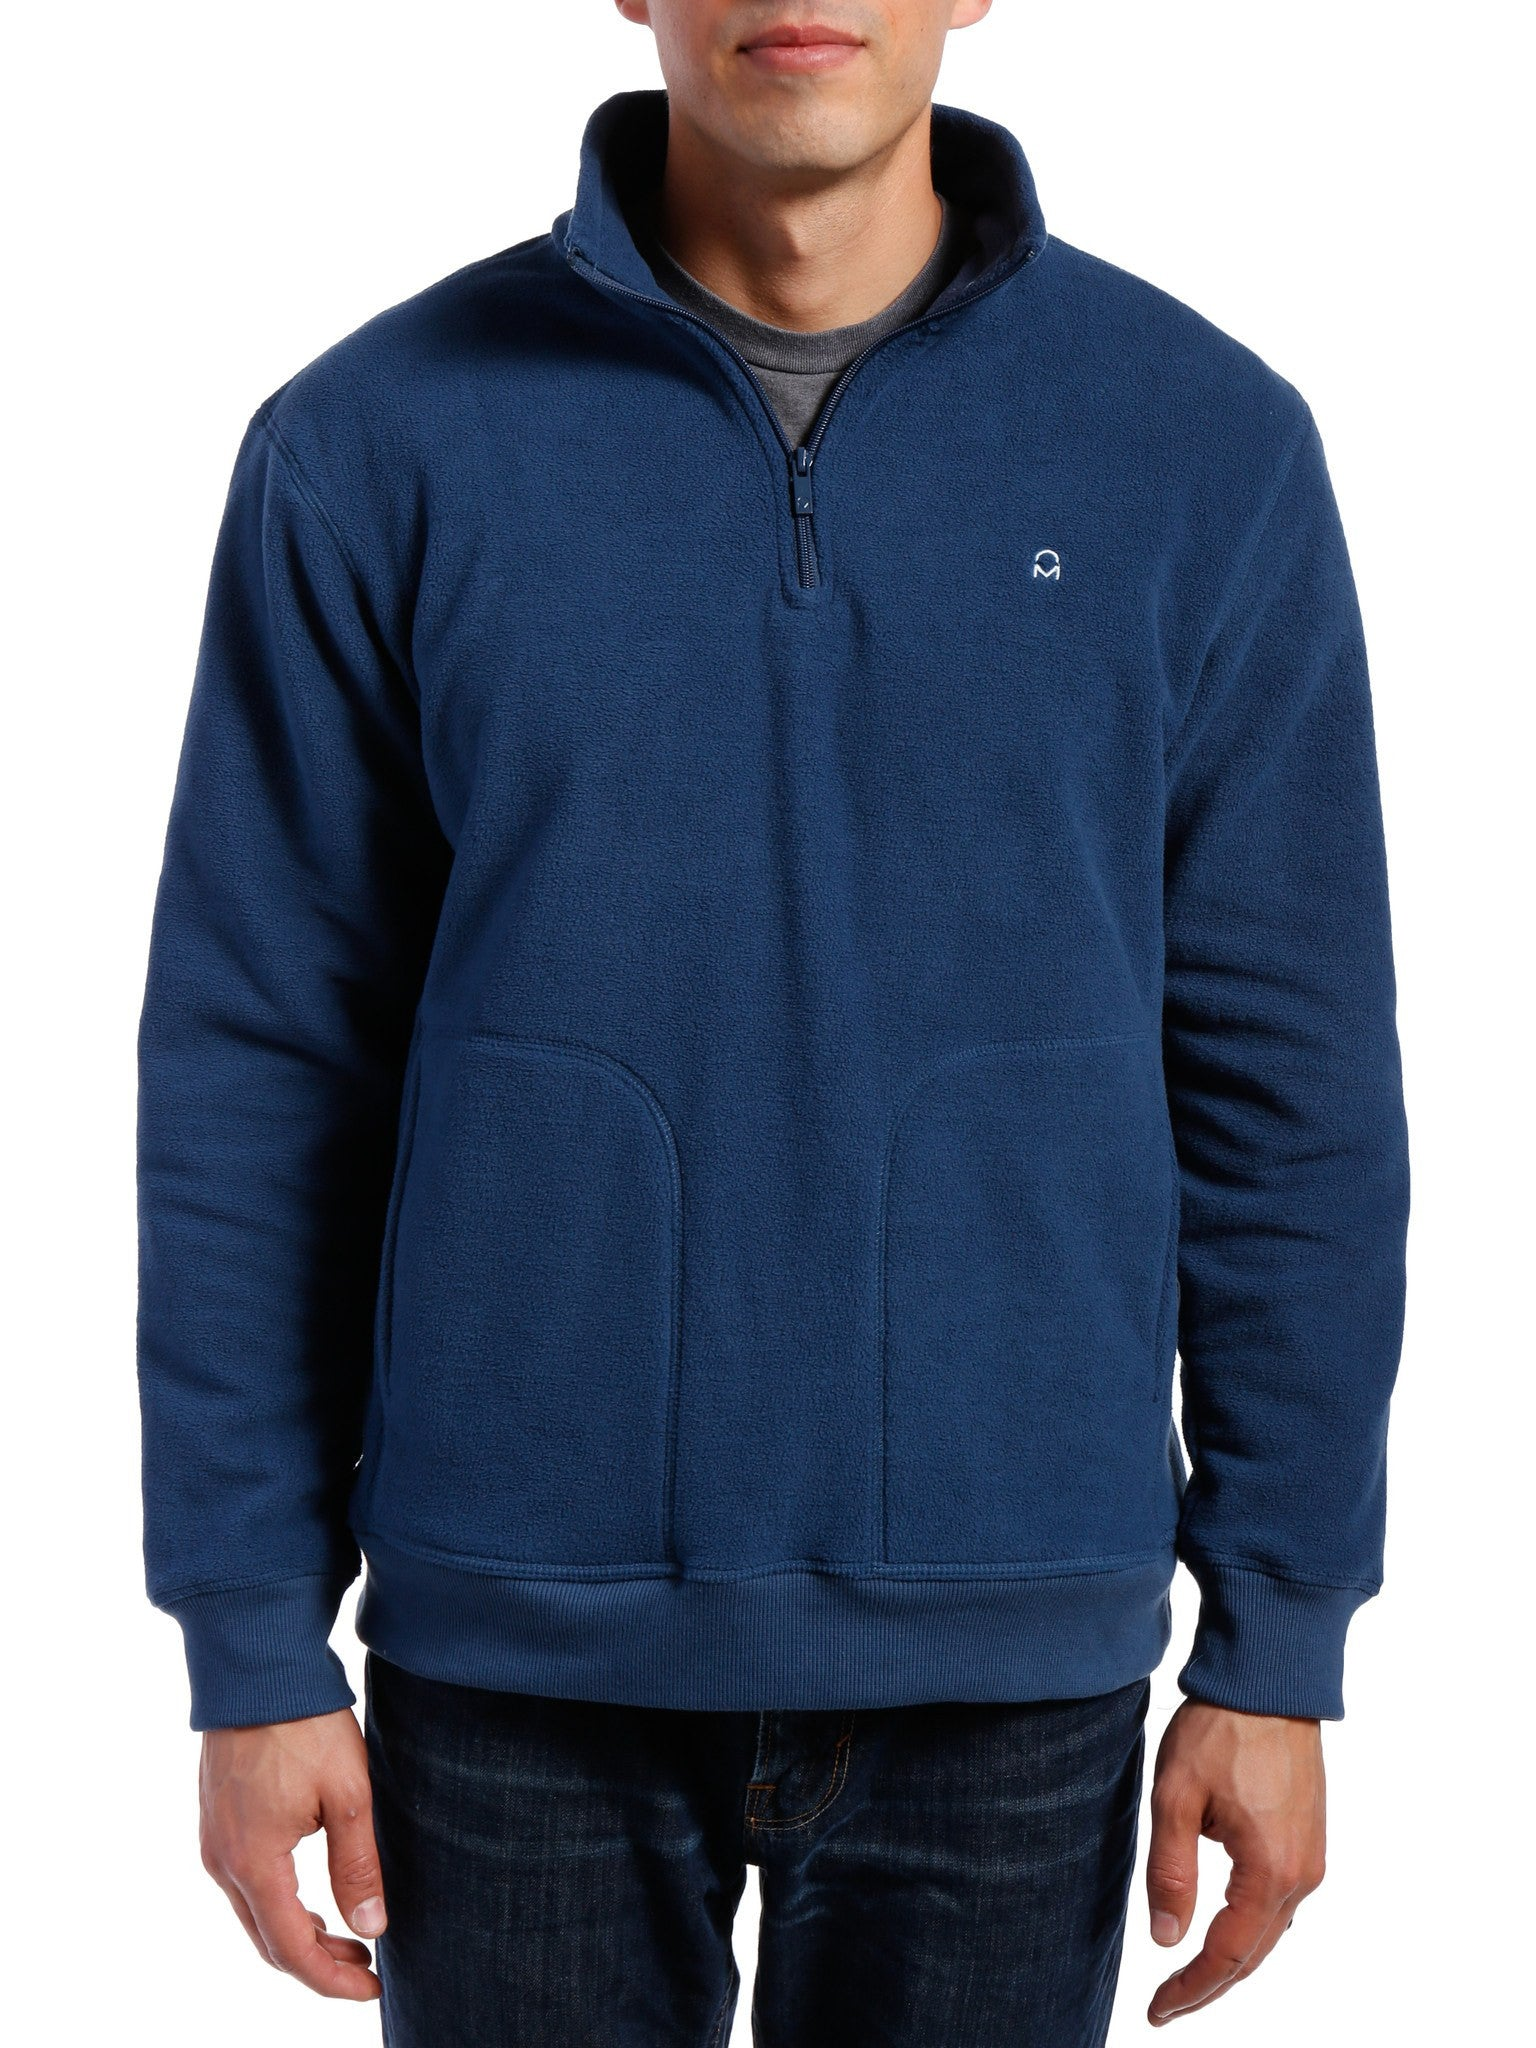 Men's Soft Fleece Half-Zip Pullover